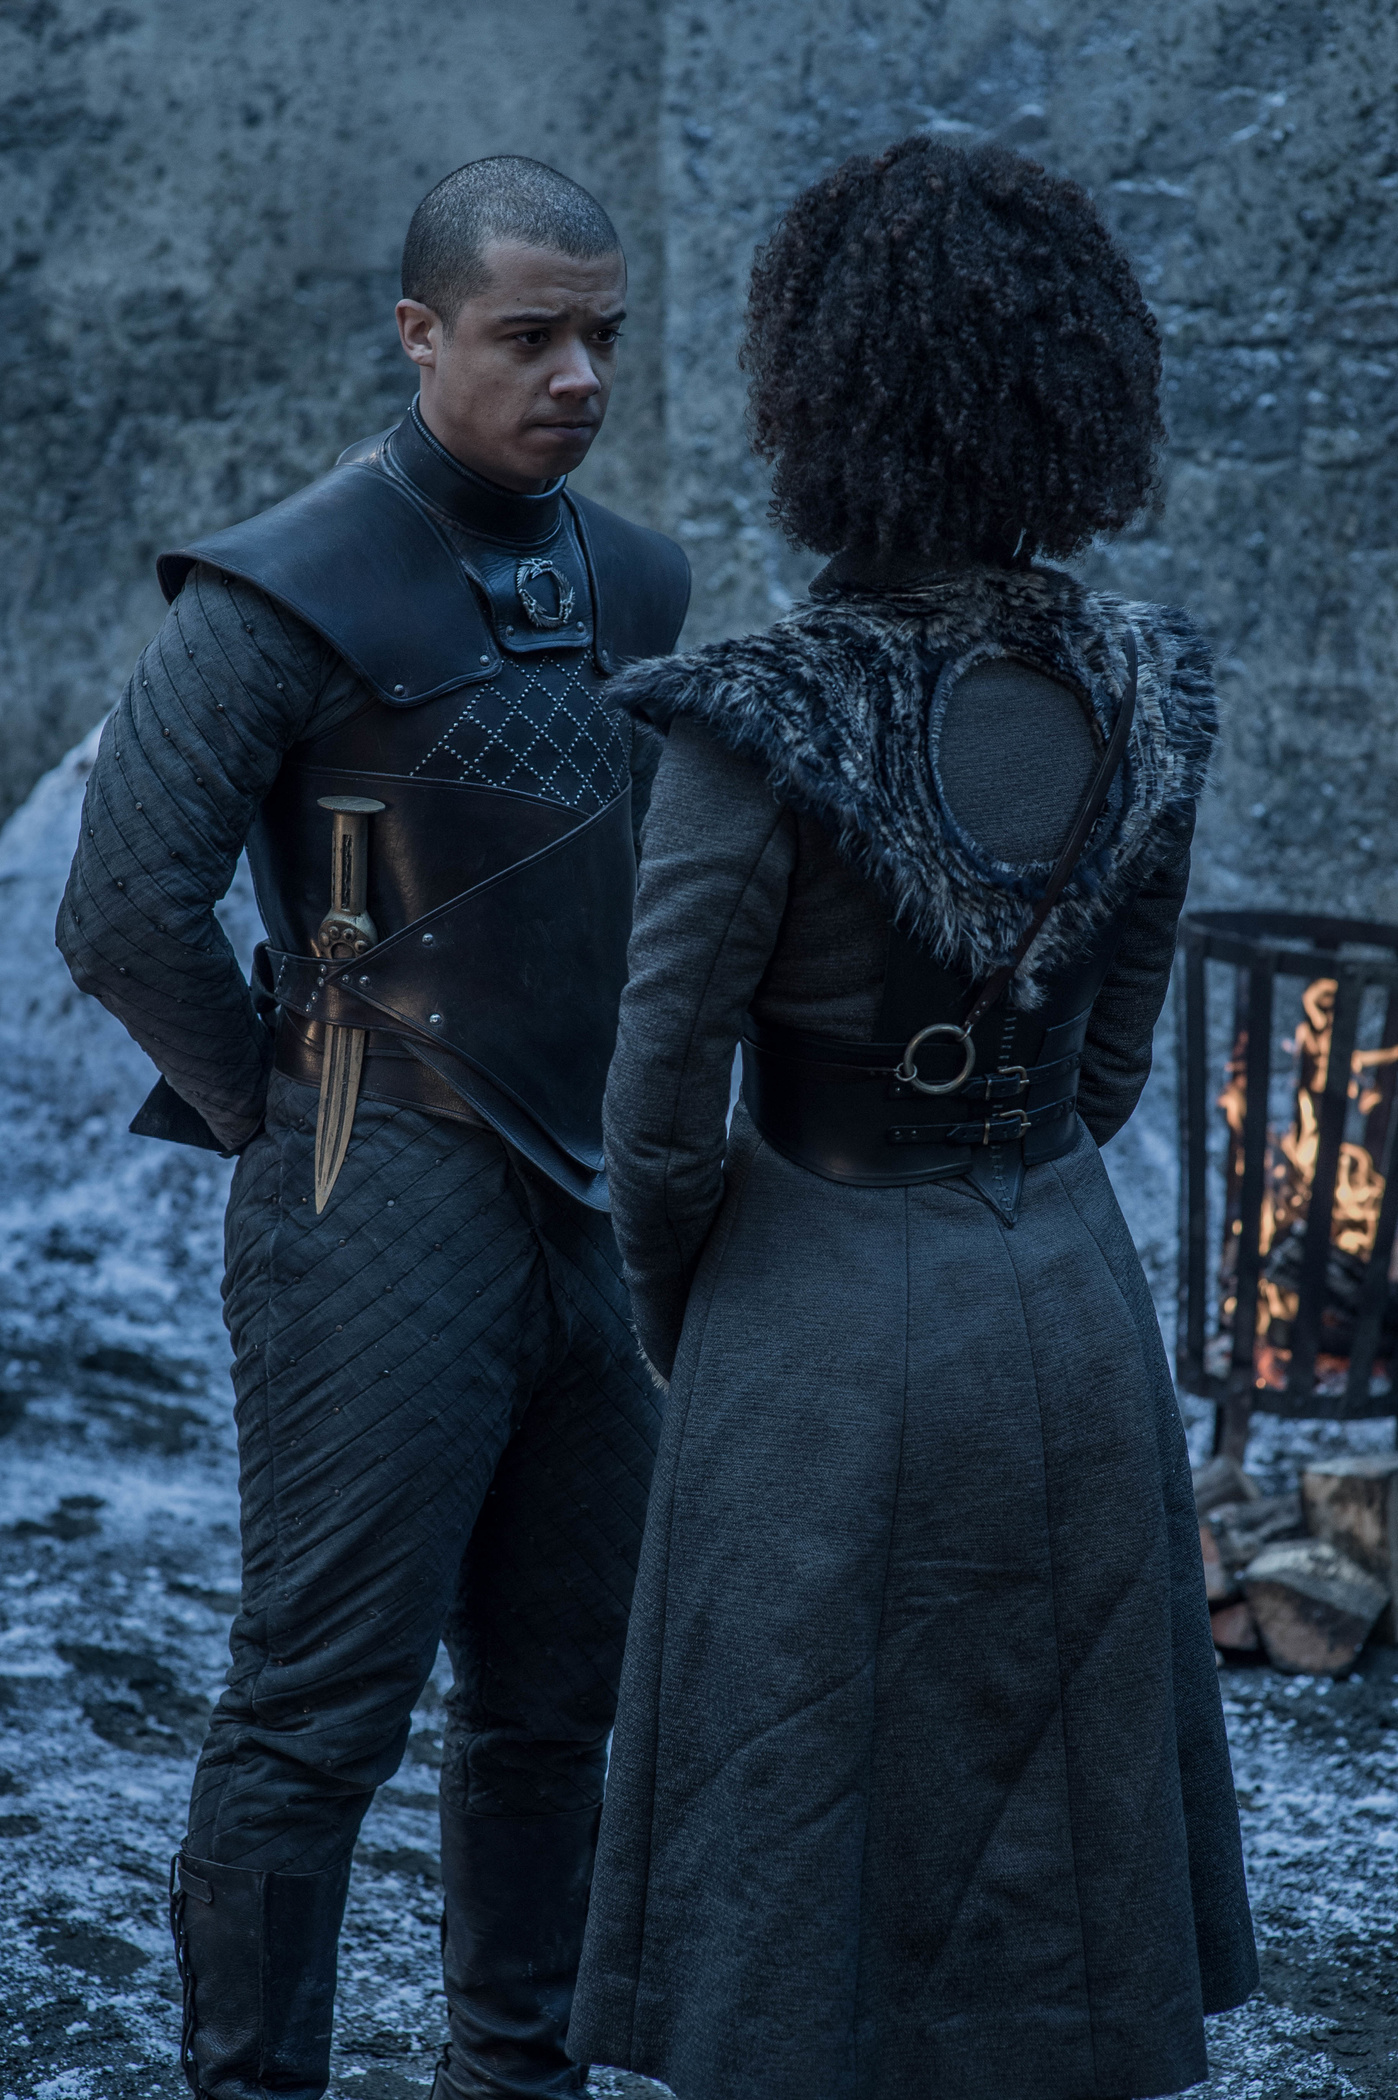 Jacob Anderson as Grey Worm and Nathalie Emmanuel as Missandei.